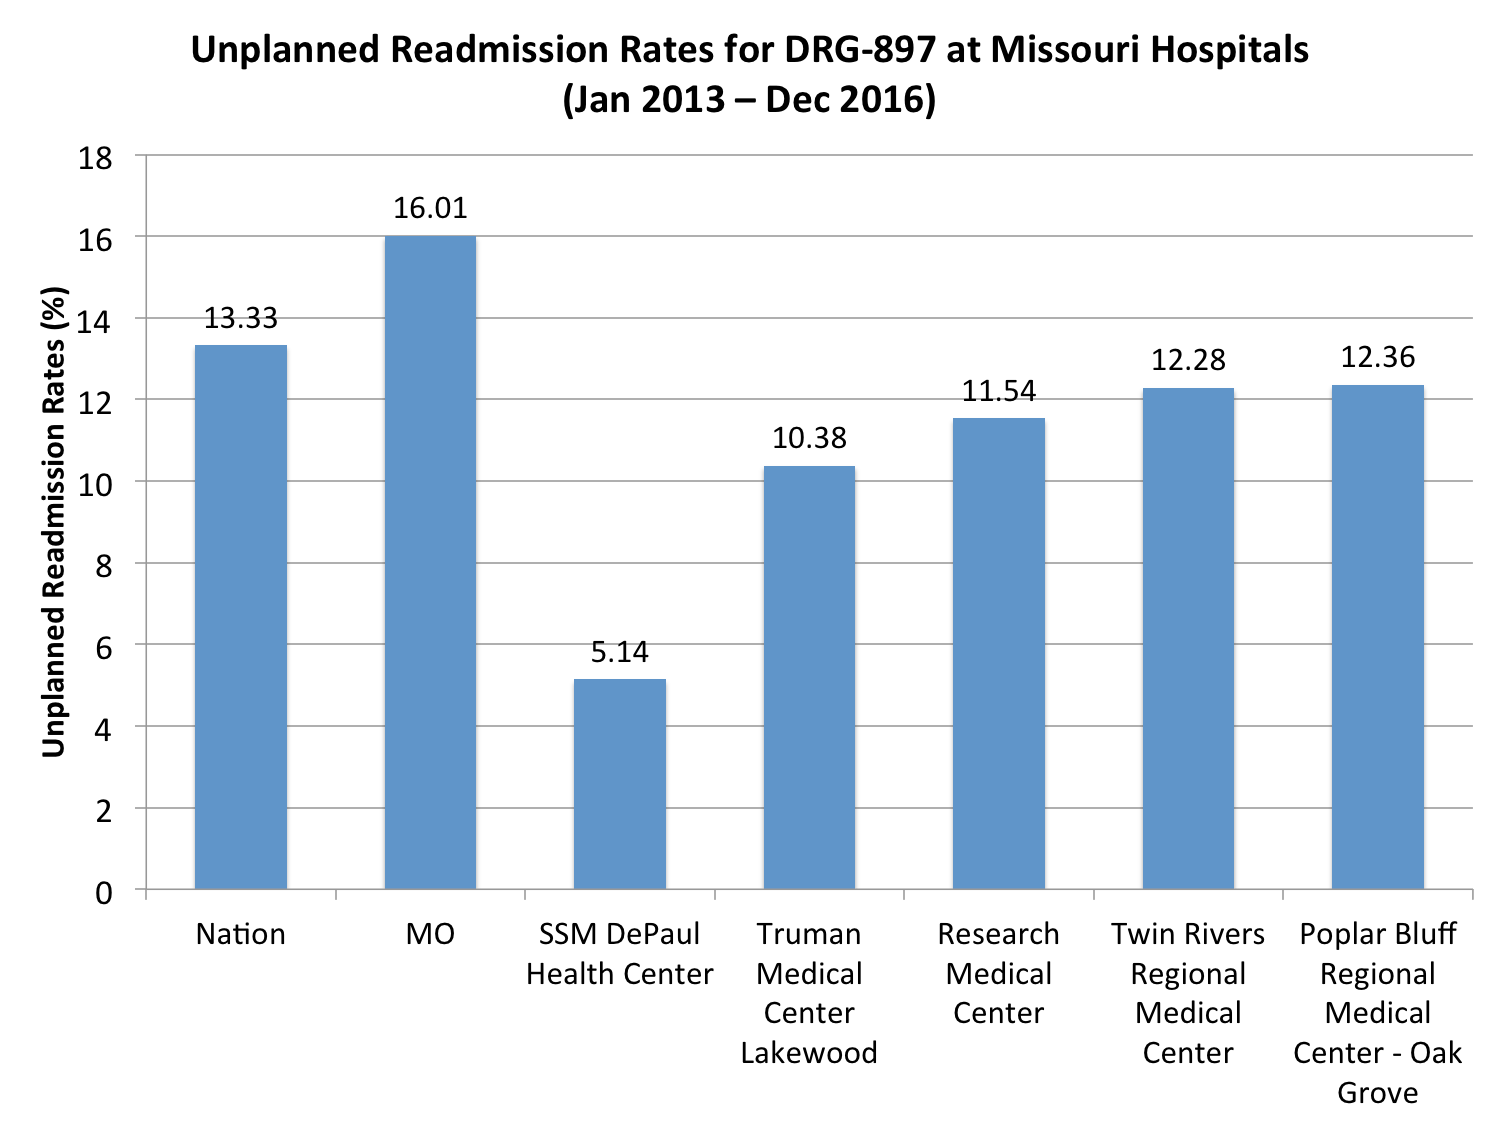 Tisch Hospital Ranking Hospital News Research Data Analysis